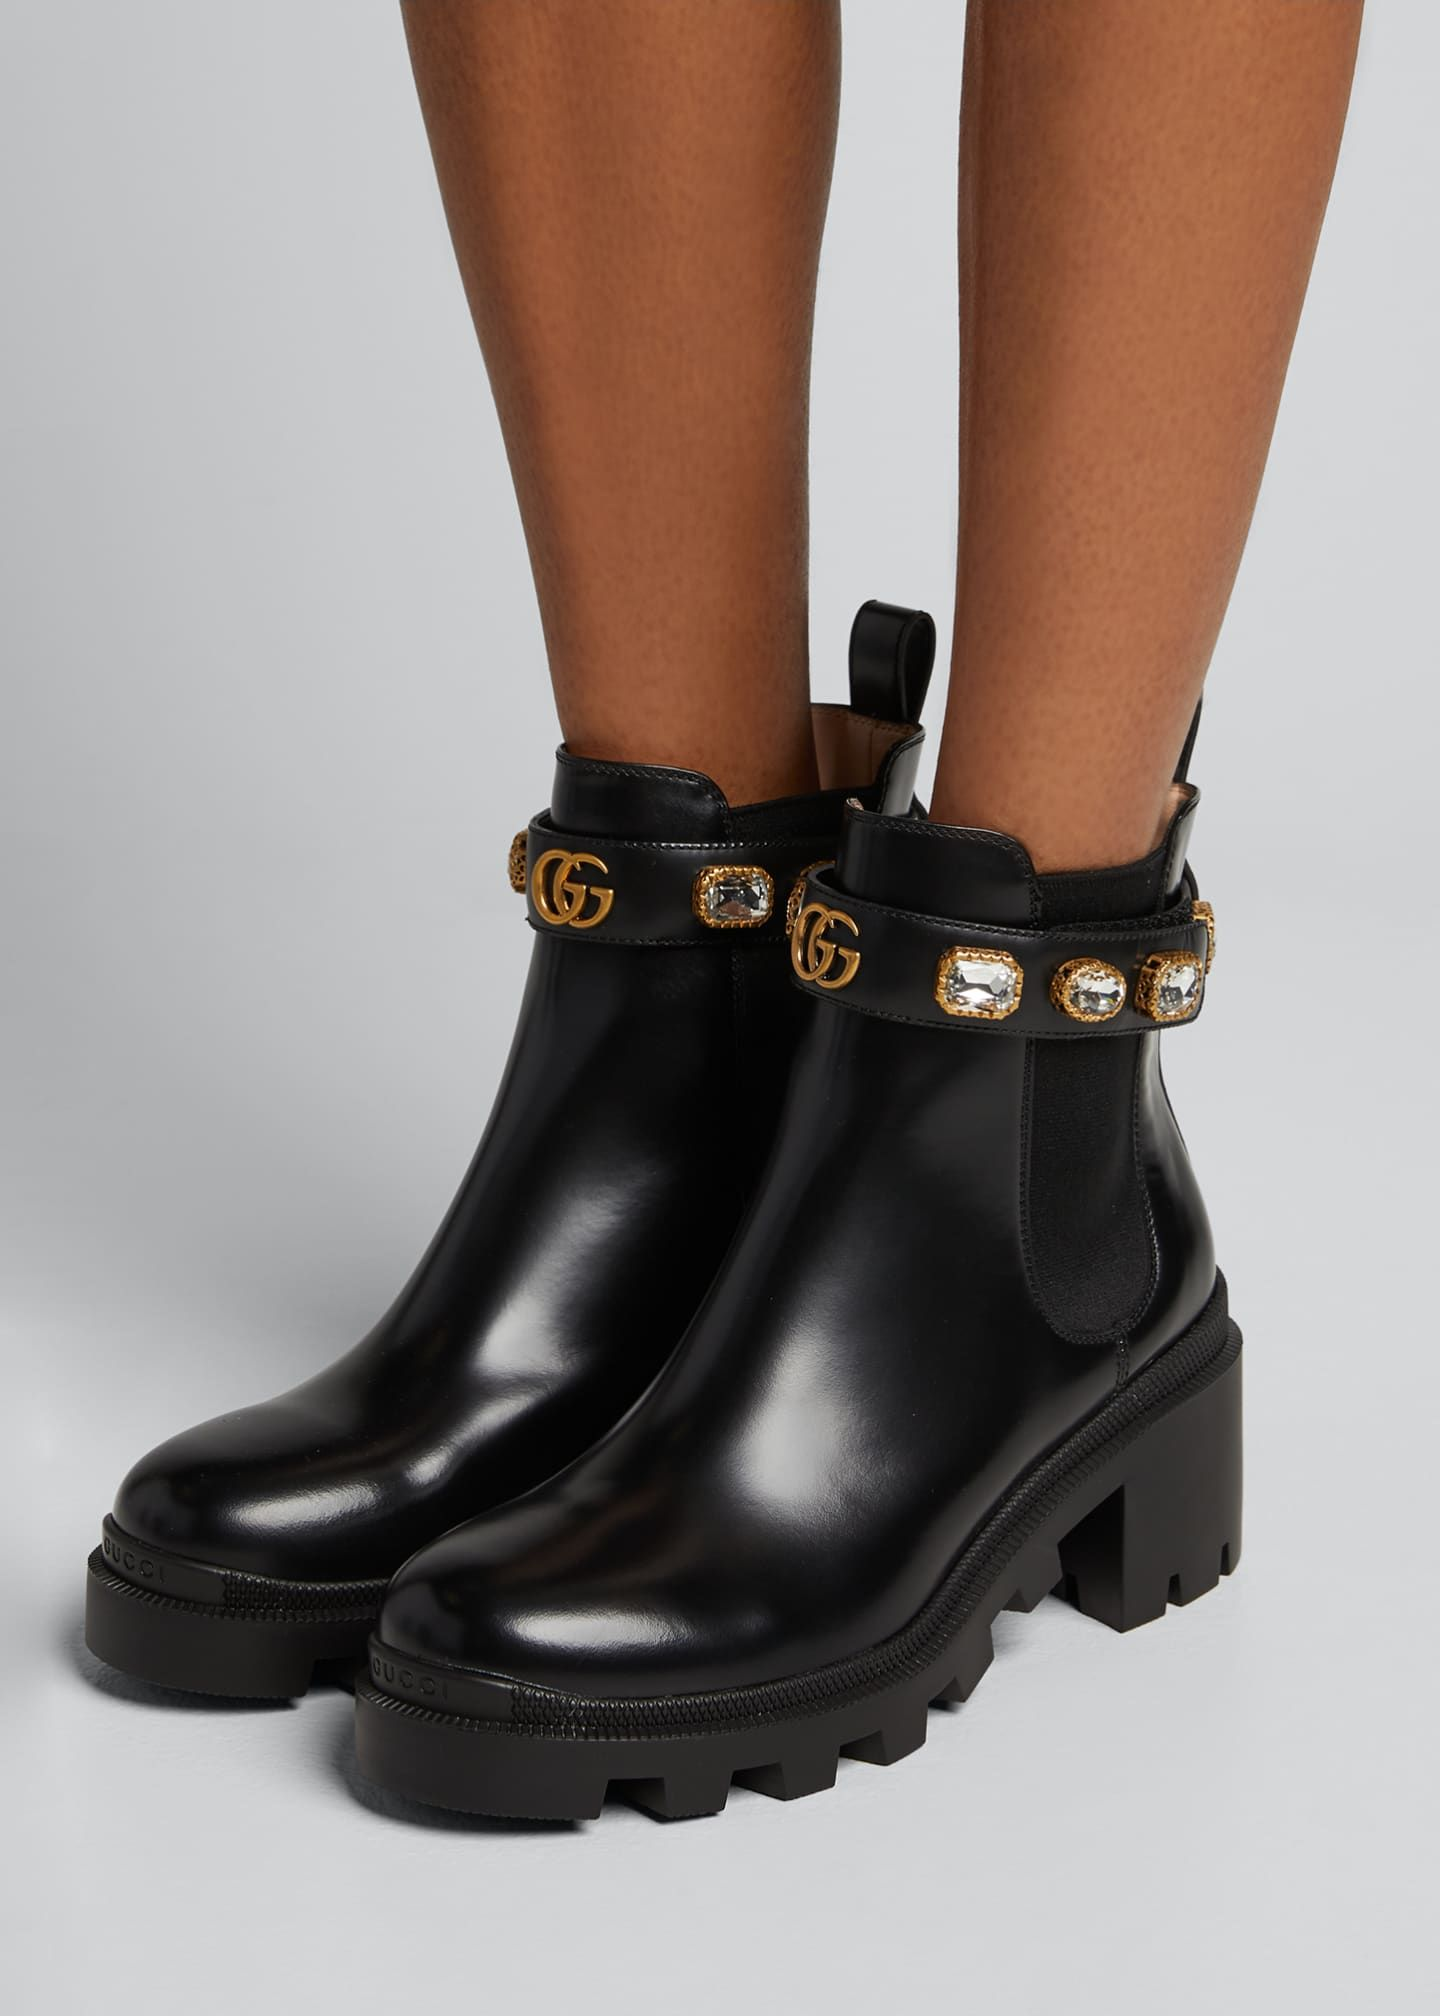 Gucci boots, Boots, Leather chelsea boots